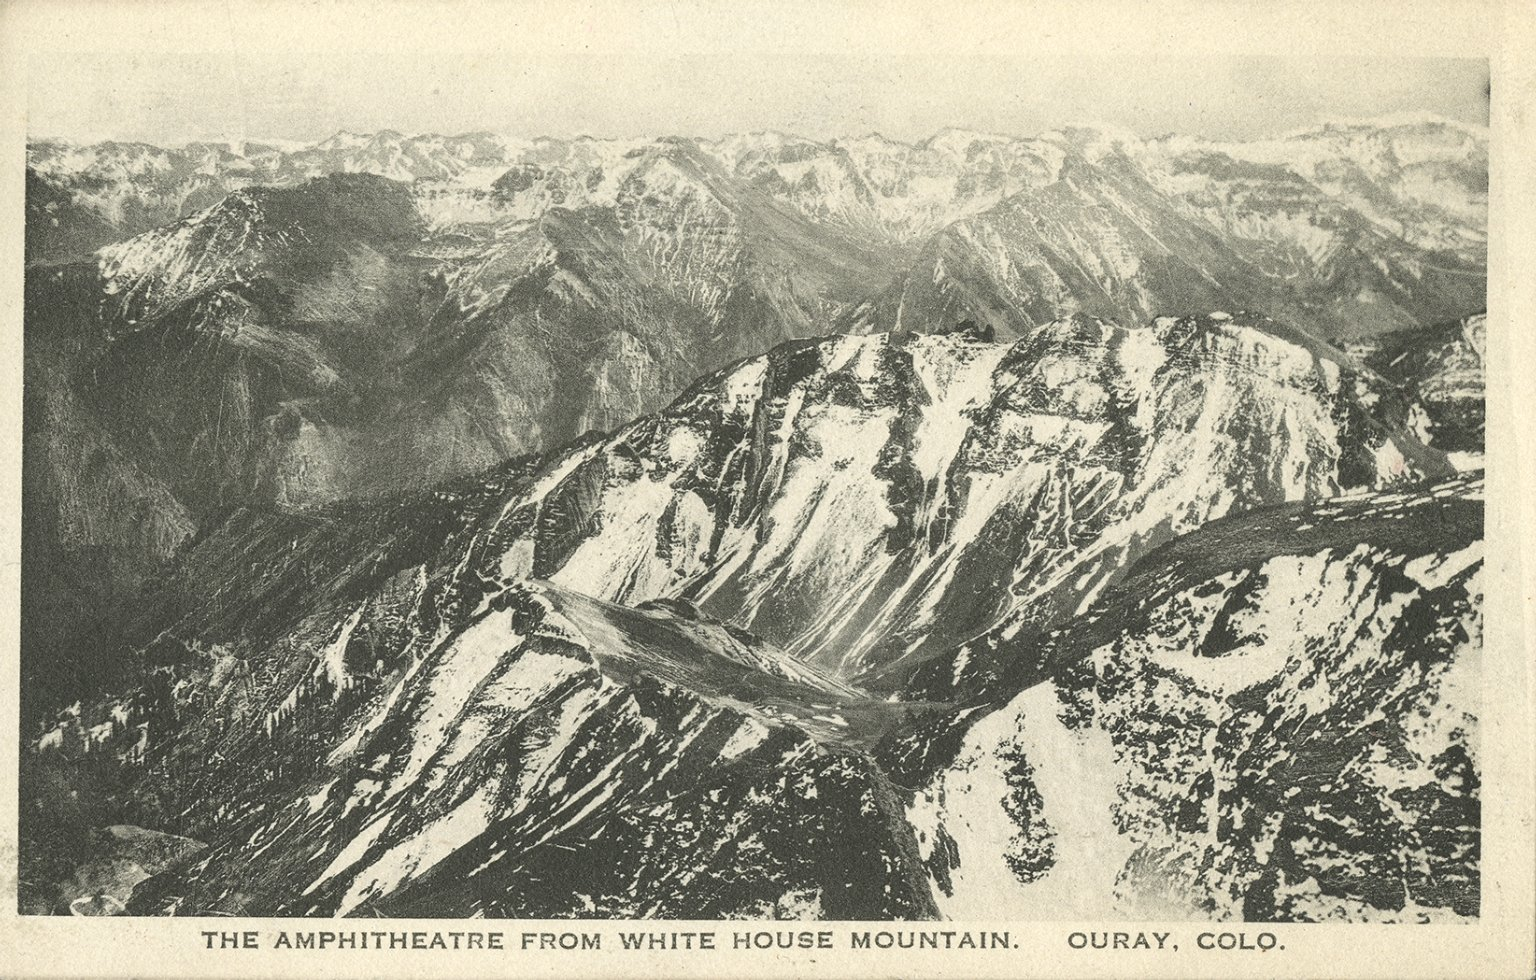 The amphitheatre from White House Mountain, Ouray, Colo.